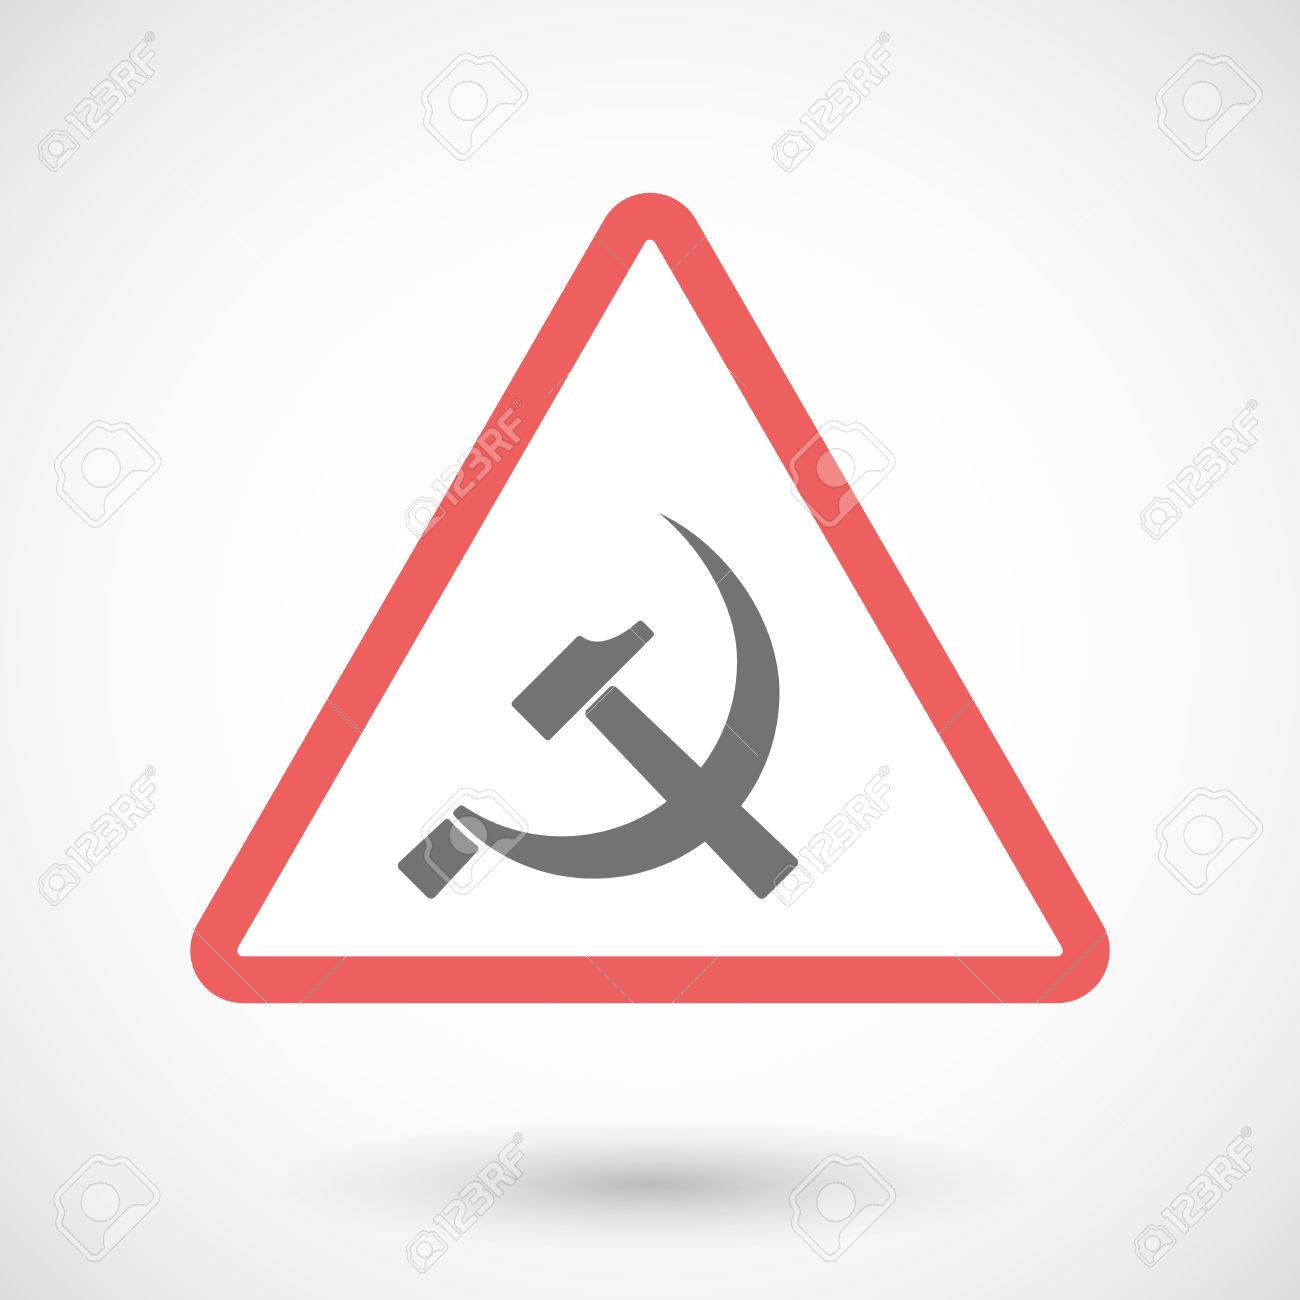 Illustration Of A Warning Signal With The Communist Symbol Royalty